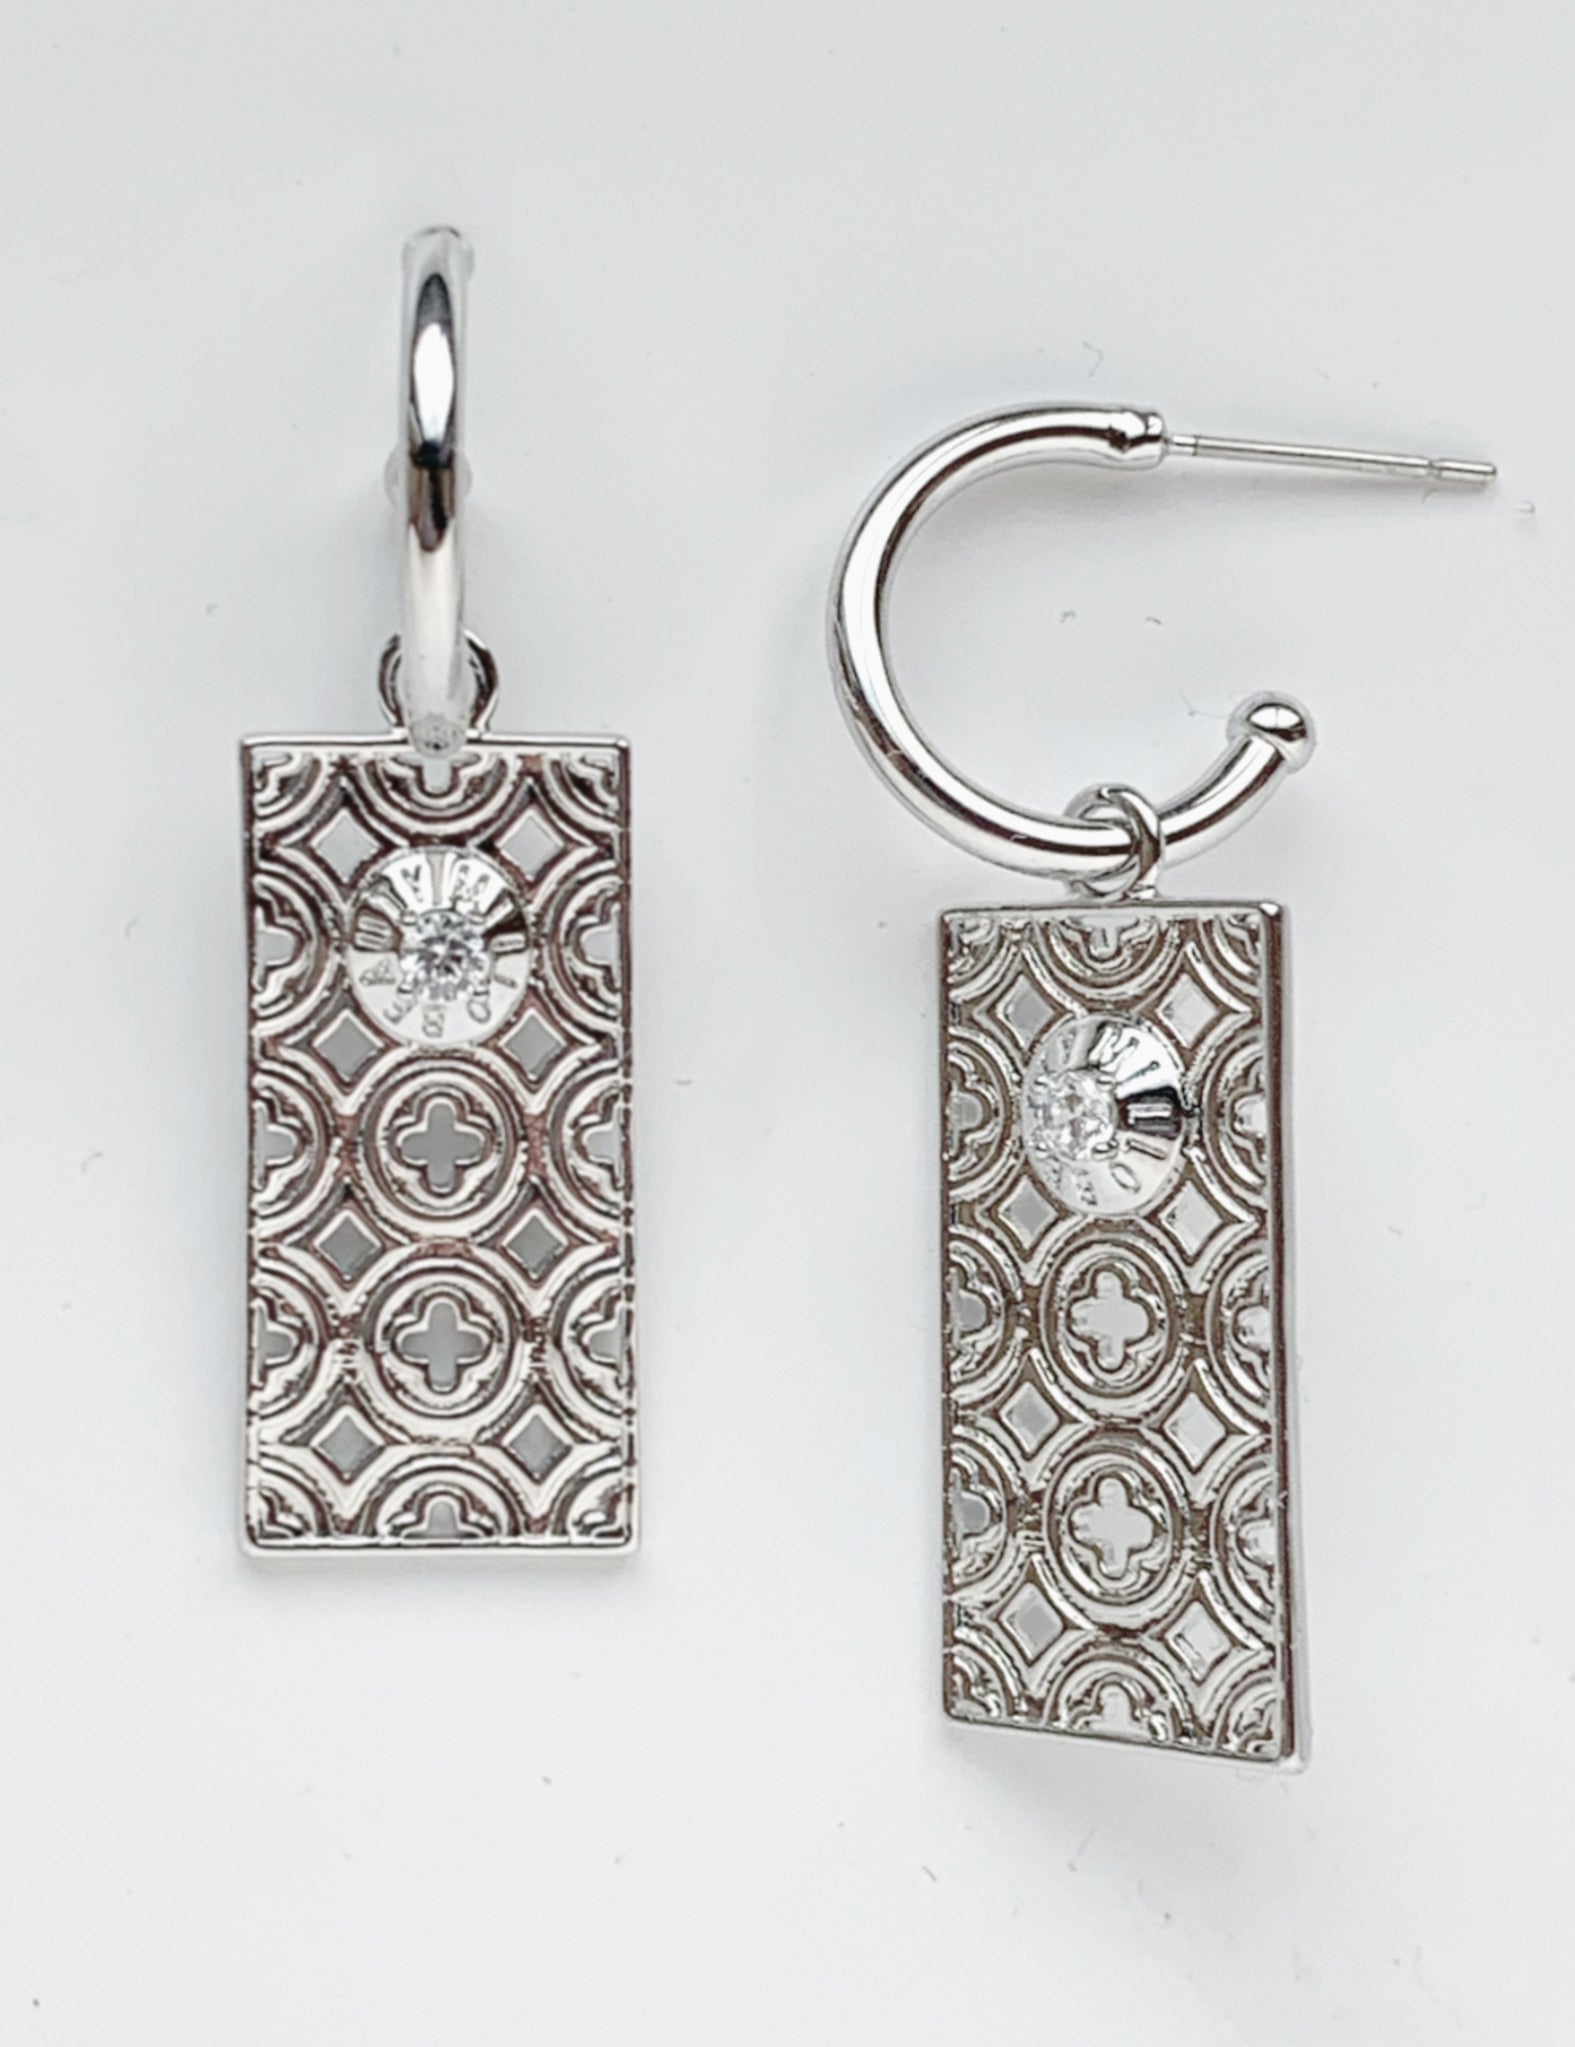 Galipoli Earrings